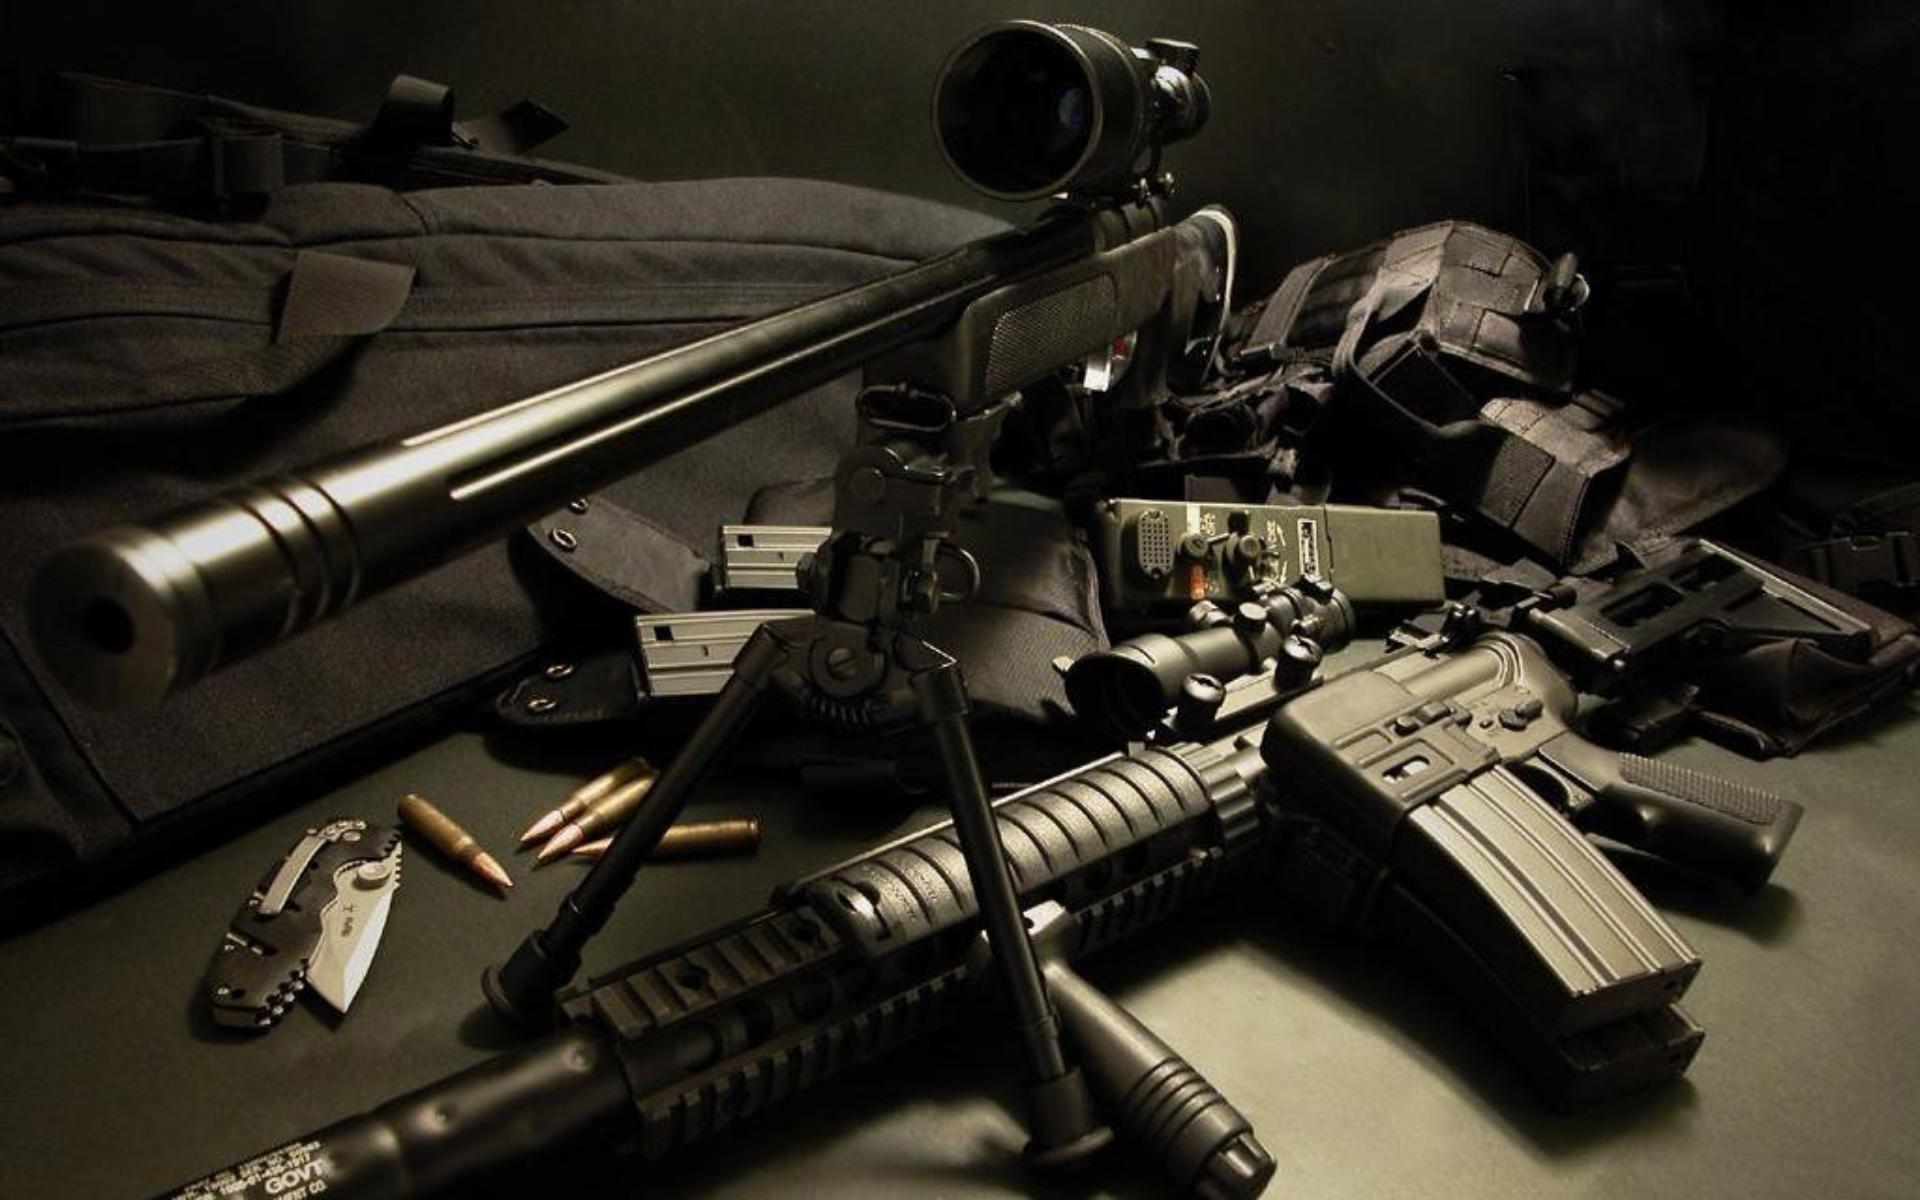 Sniper Rifle High Quality Wallpapers Image